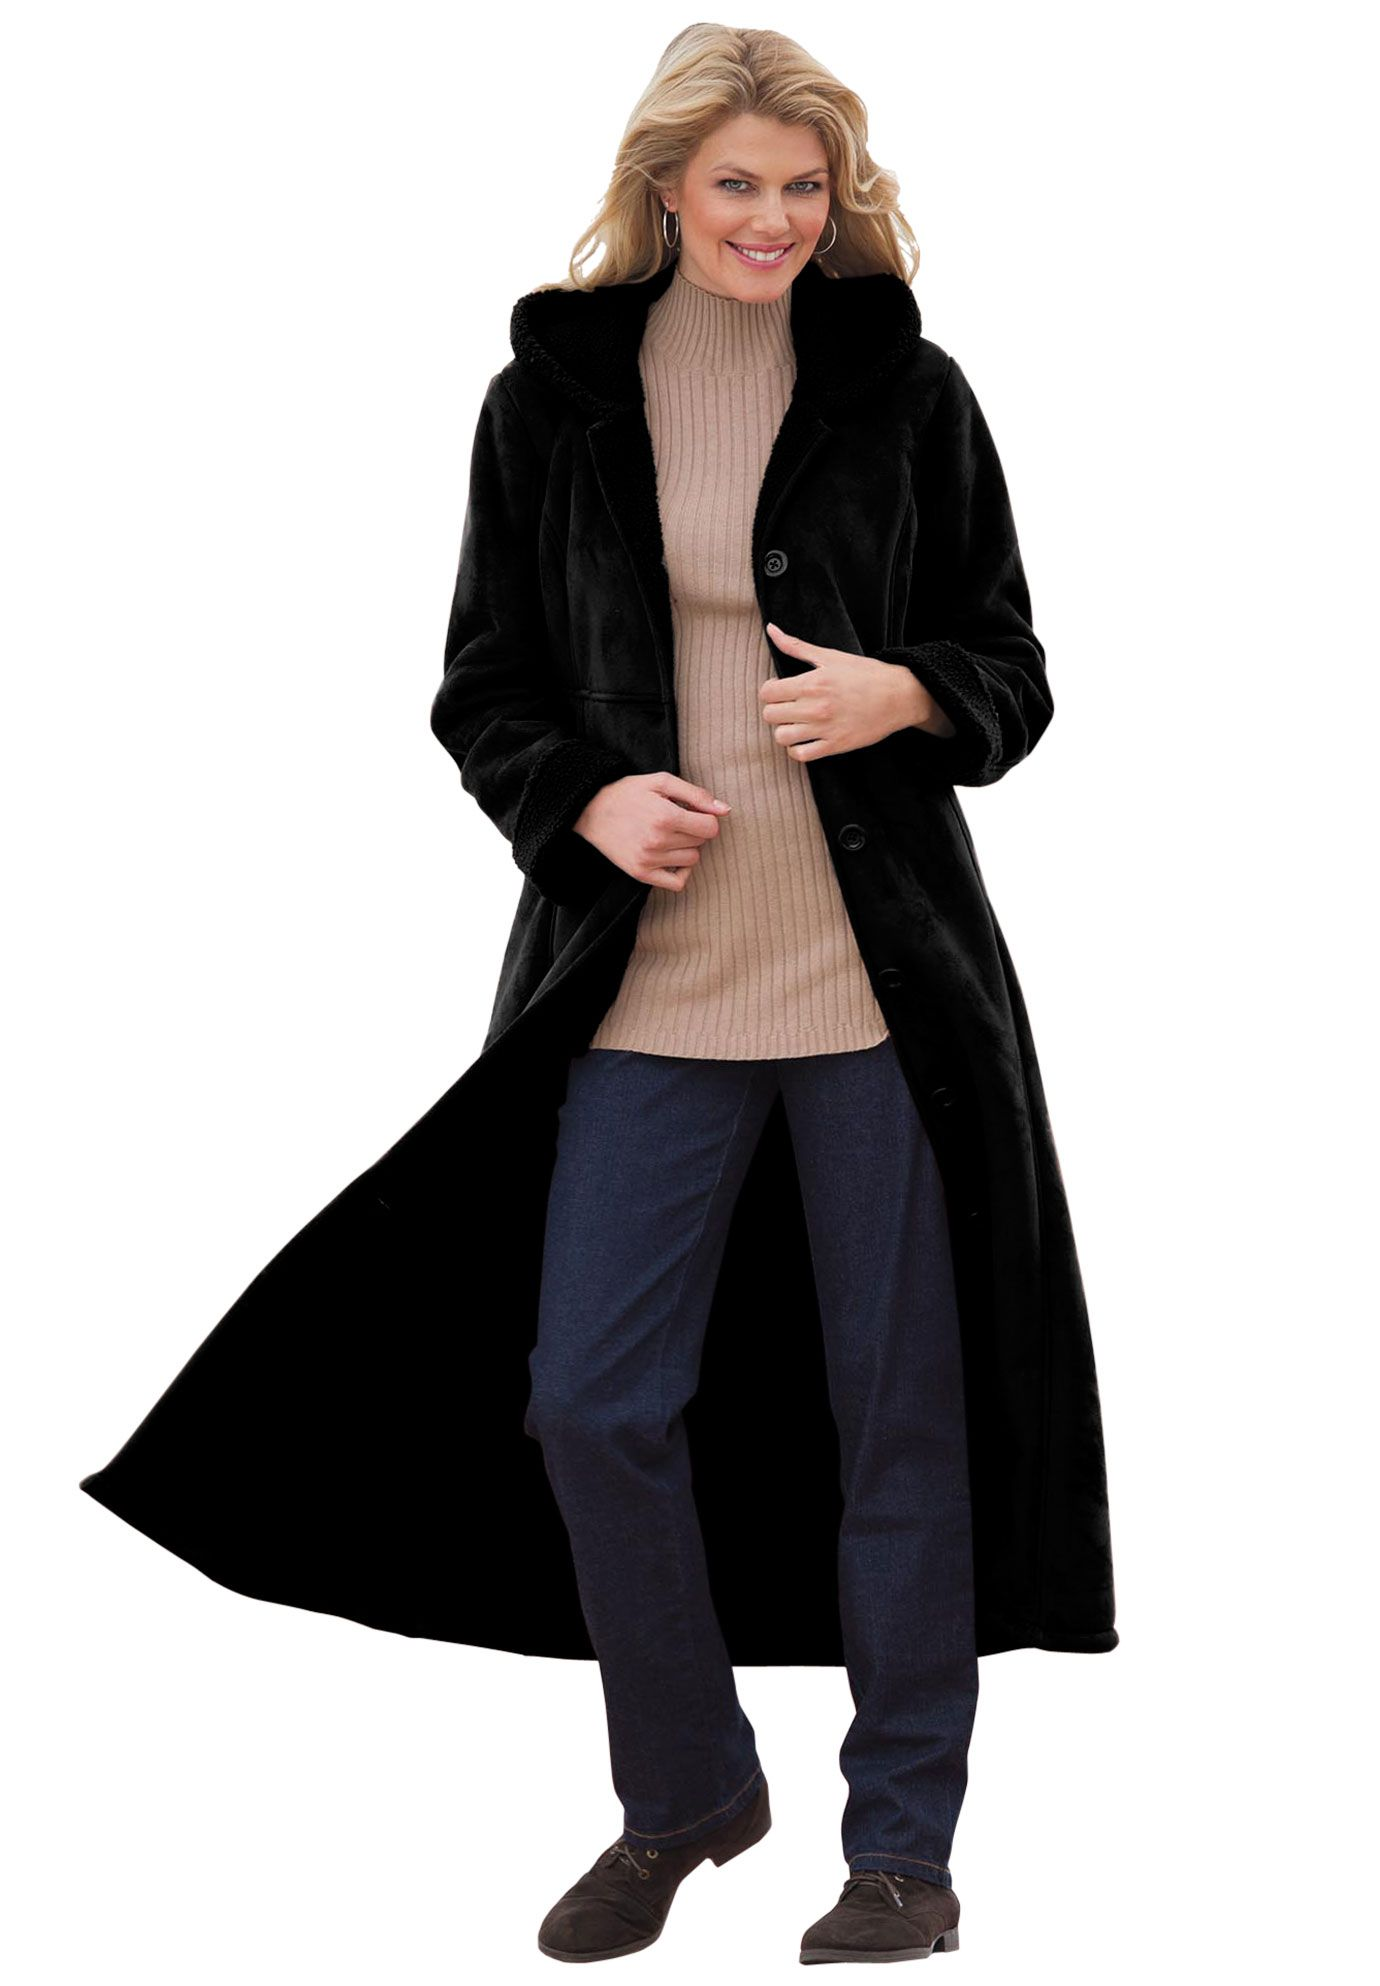 ecf52303a46 My new winter coat. Plus Size Long hooded coat in faux-shearling ...